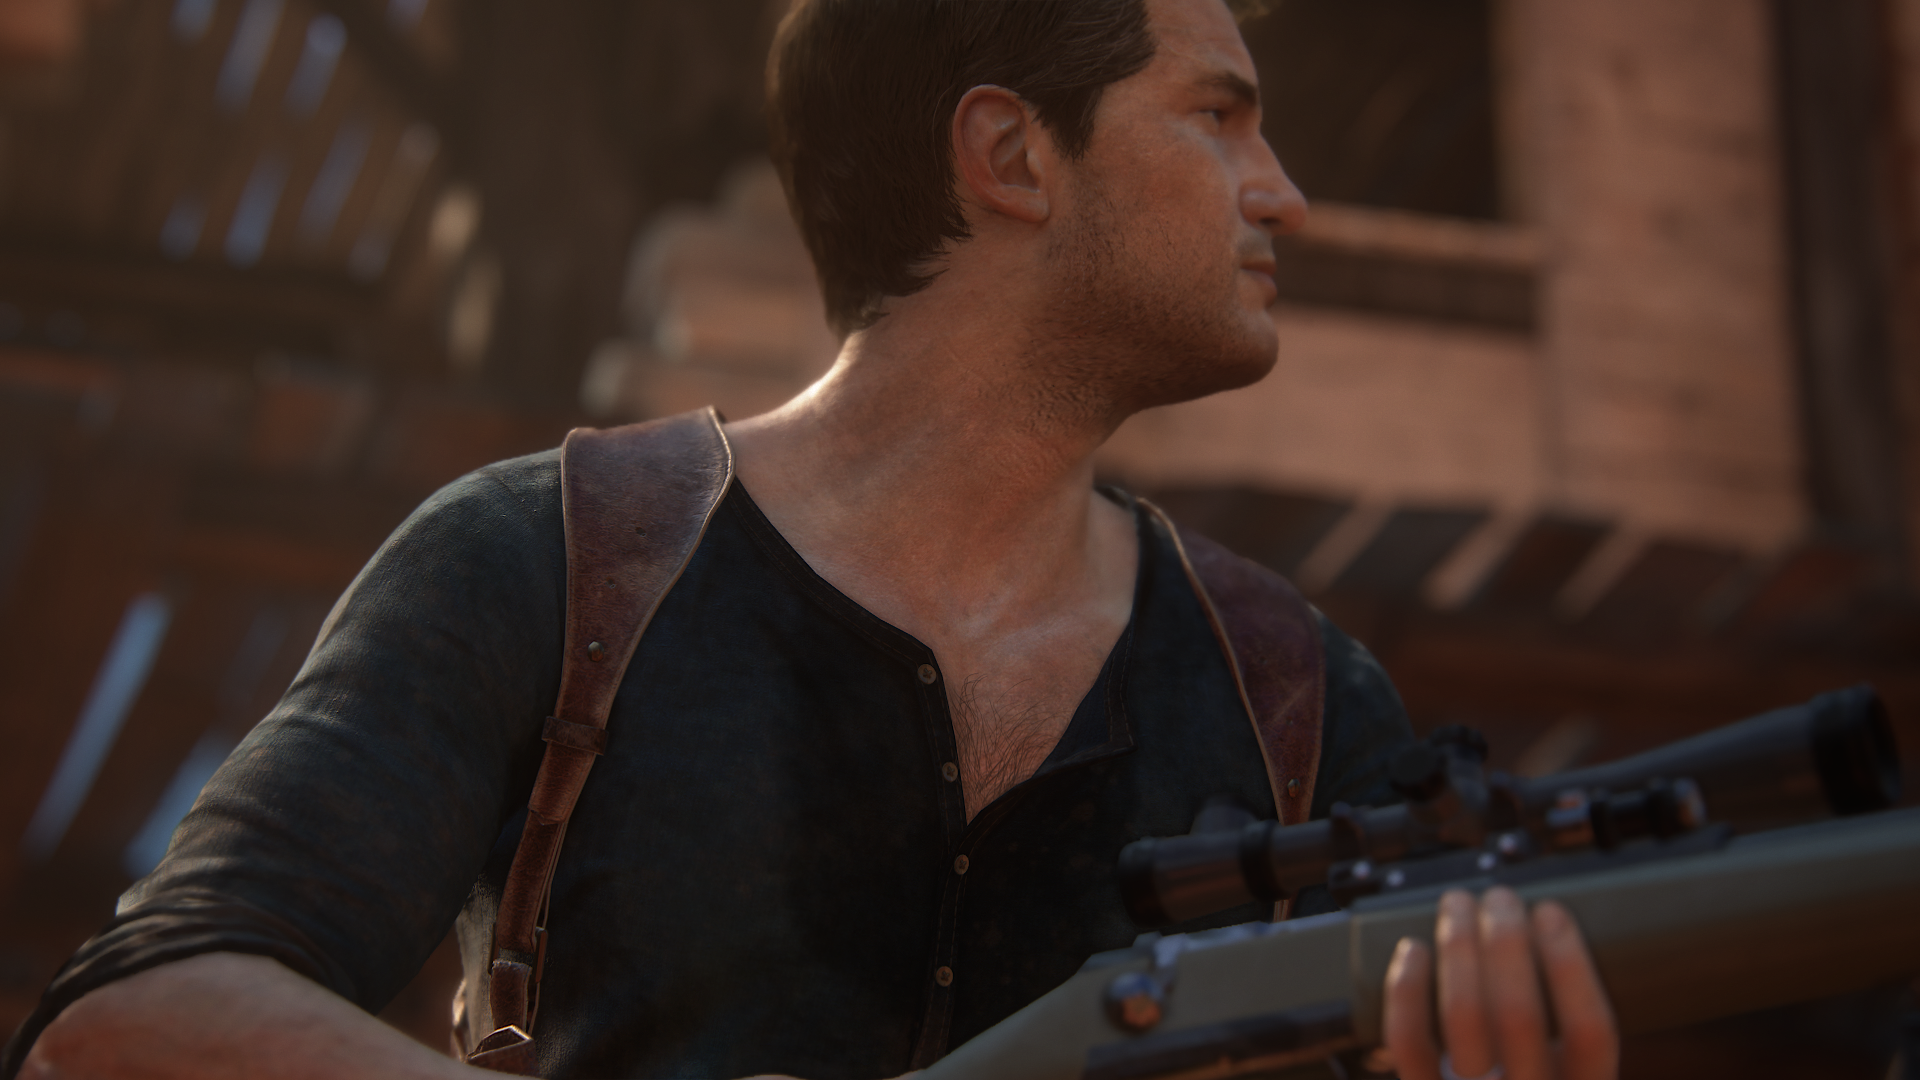 uncharted4_eldesenlacsgkpm.png